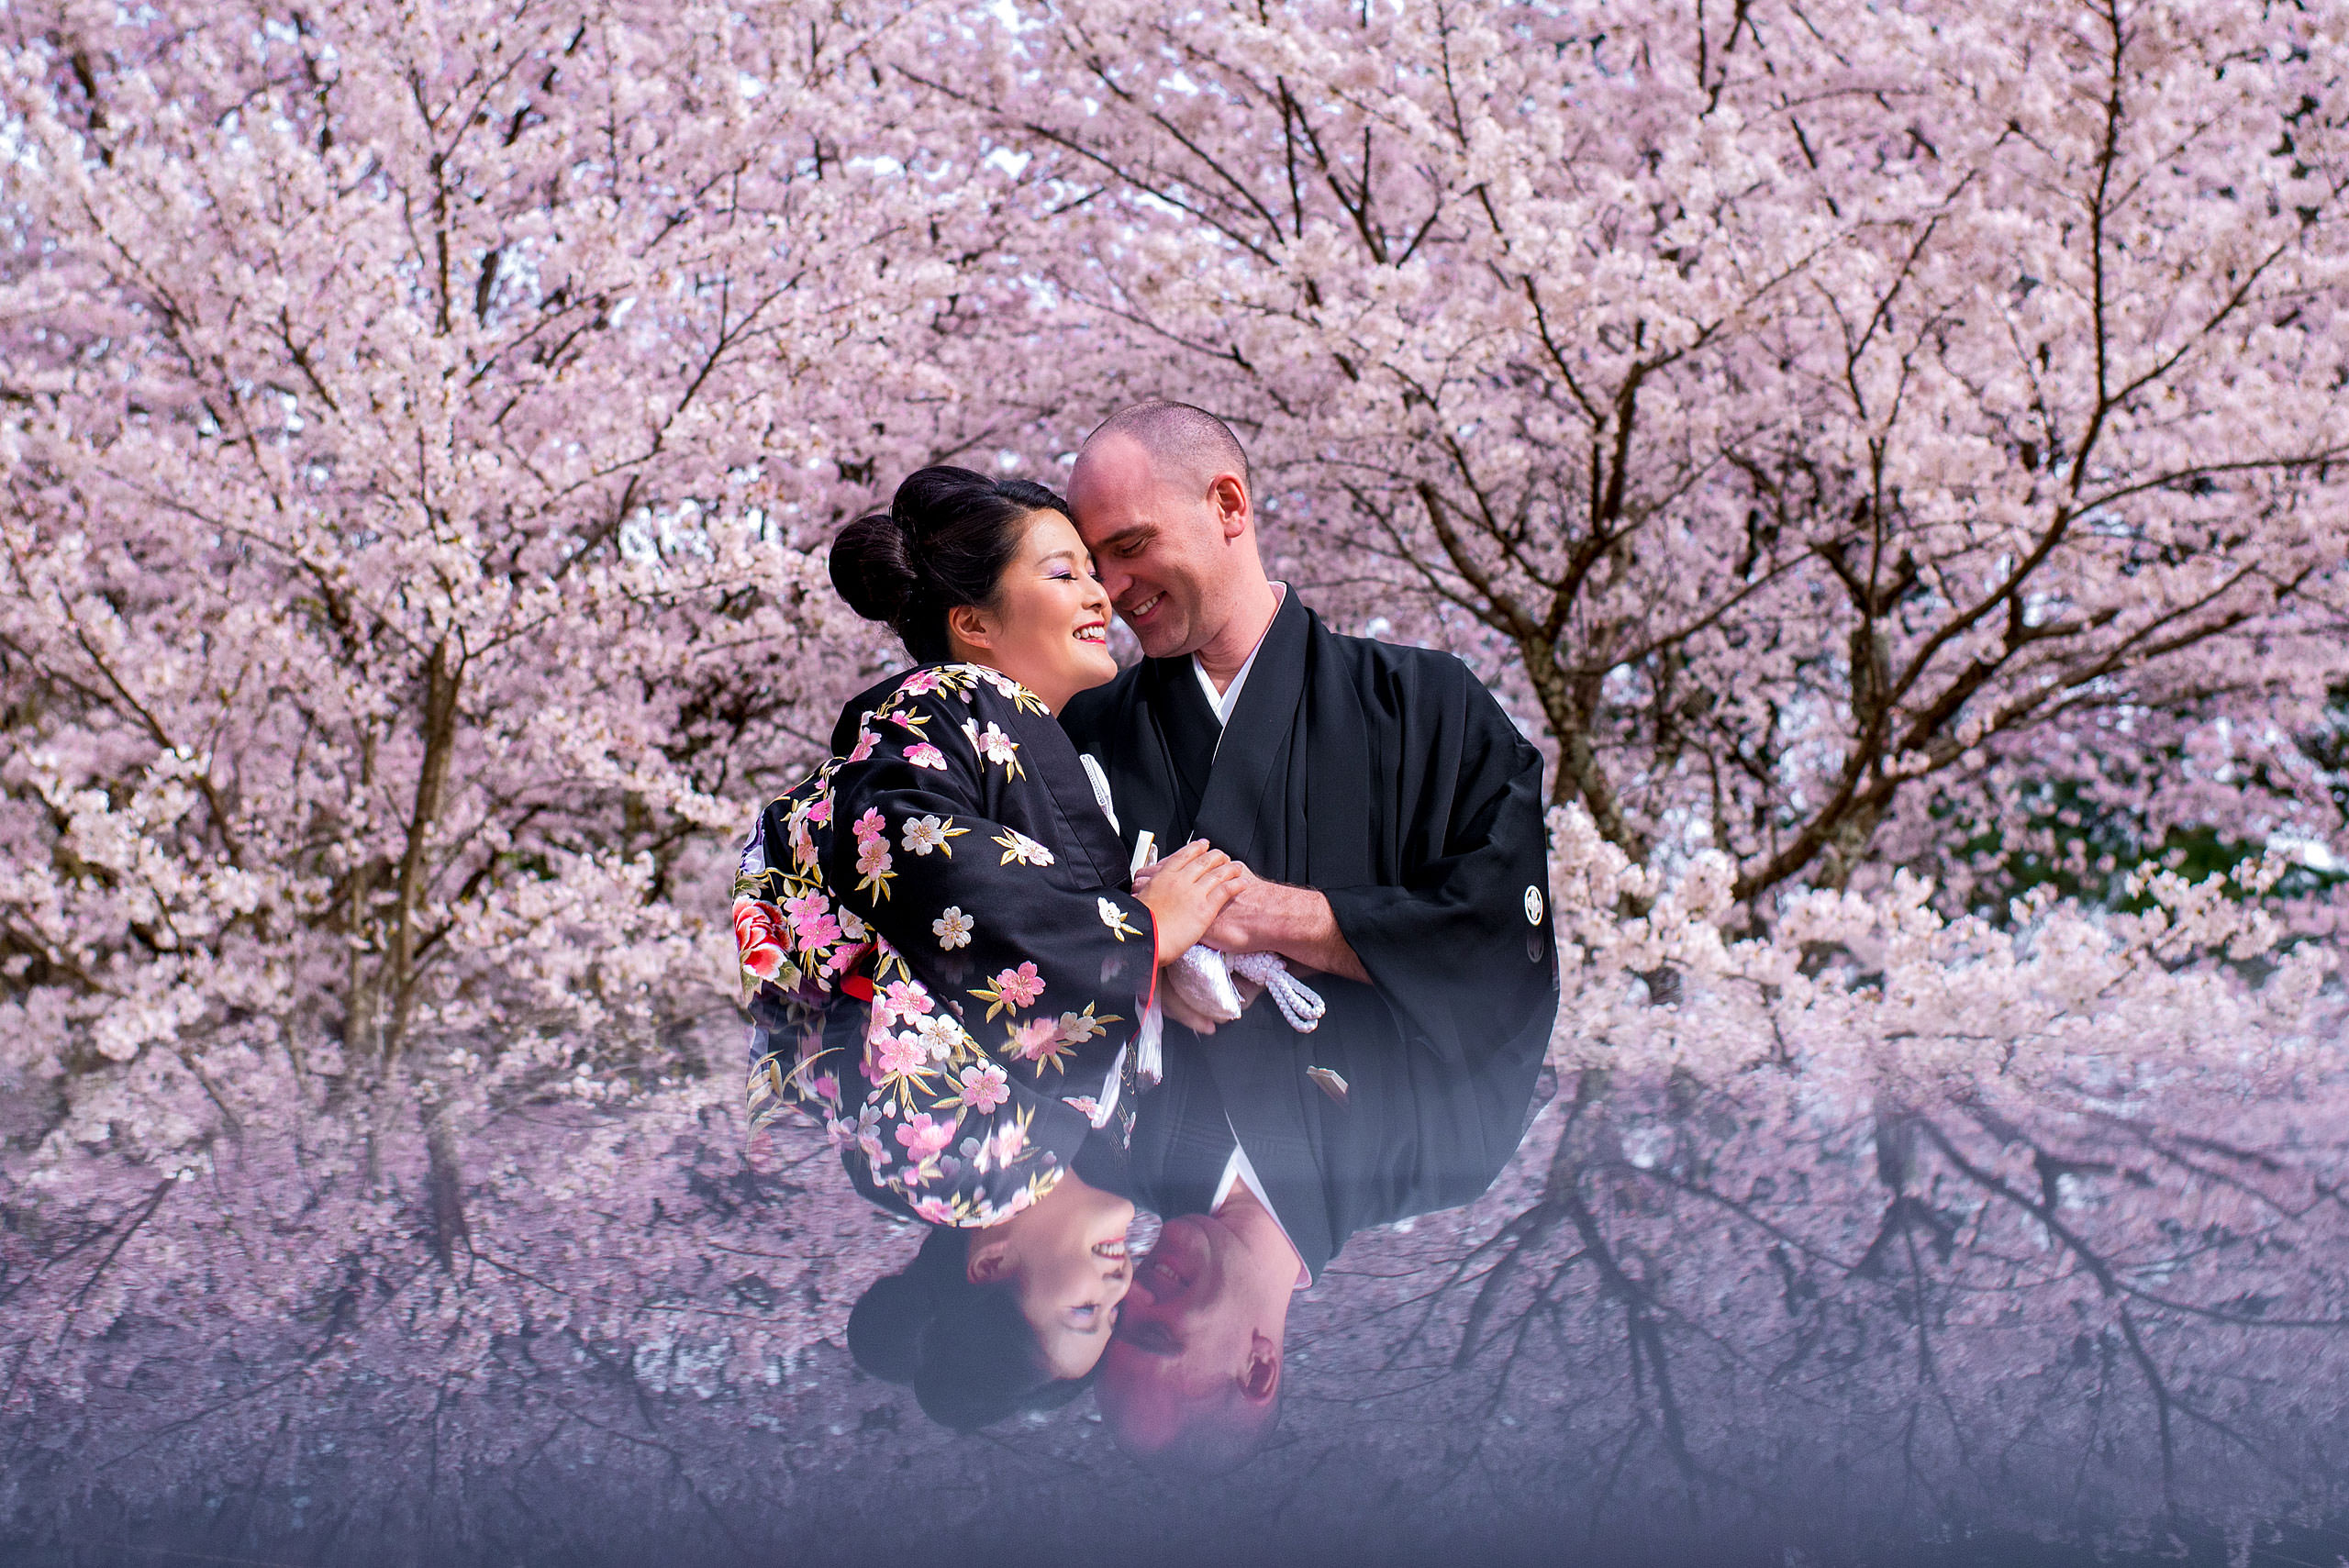 a Japanese bride and groom in front of a cherry blossom tree by Japan Destination Wedding Photographer Sean LeBlanc